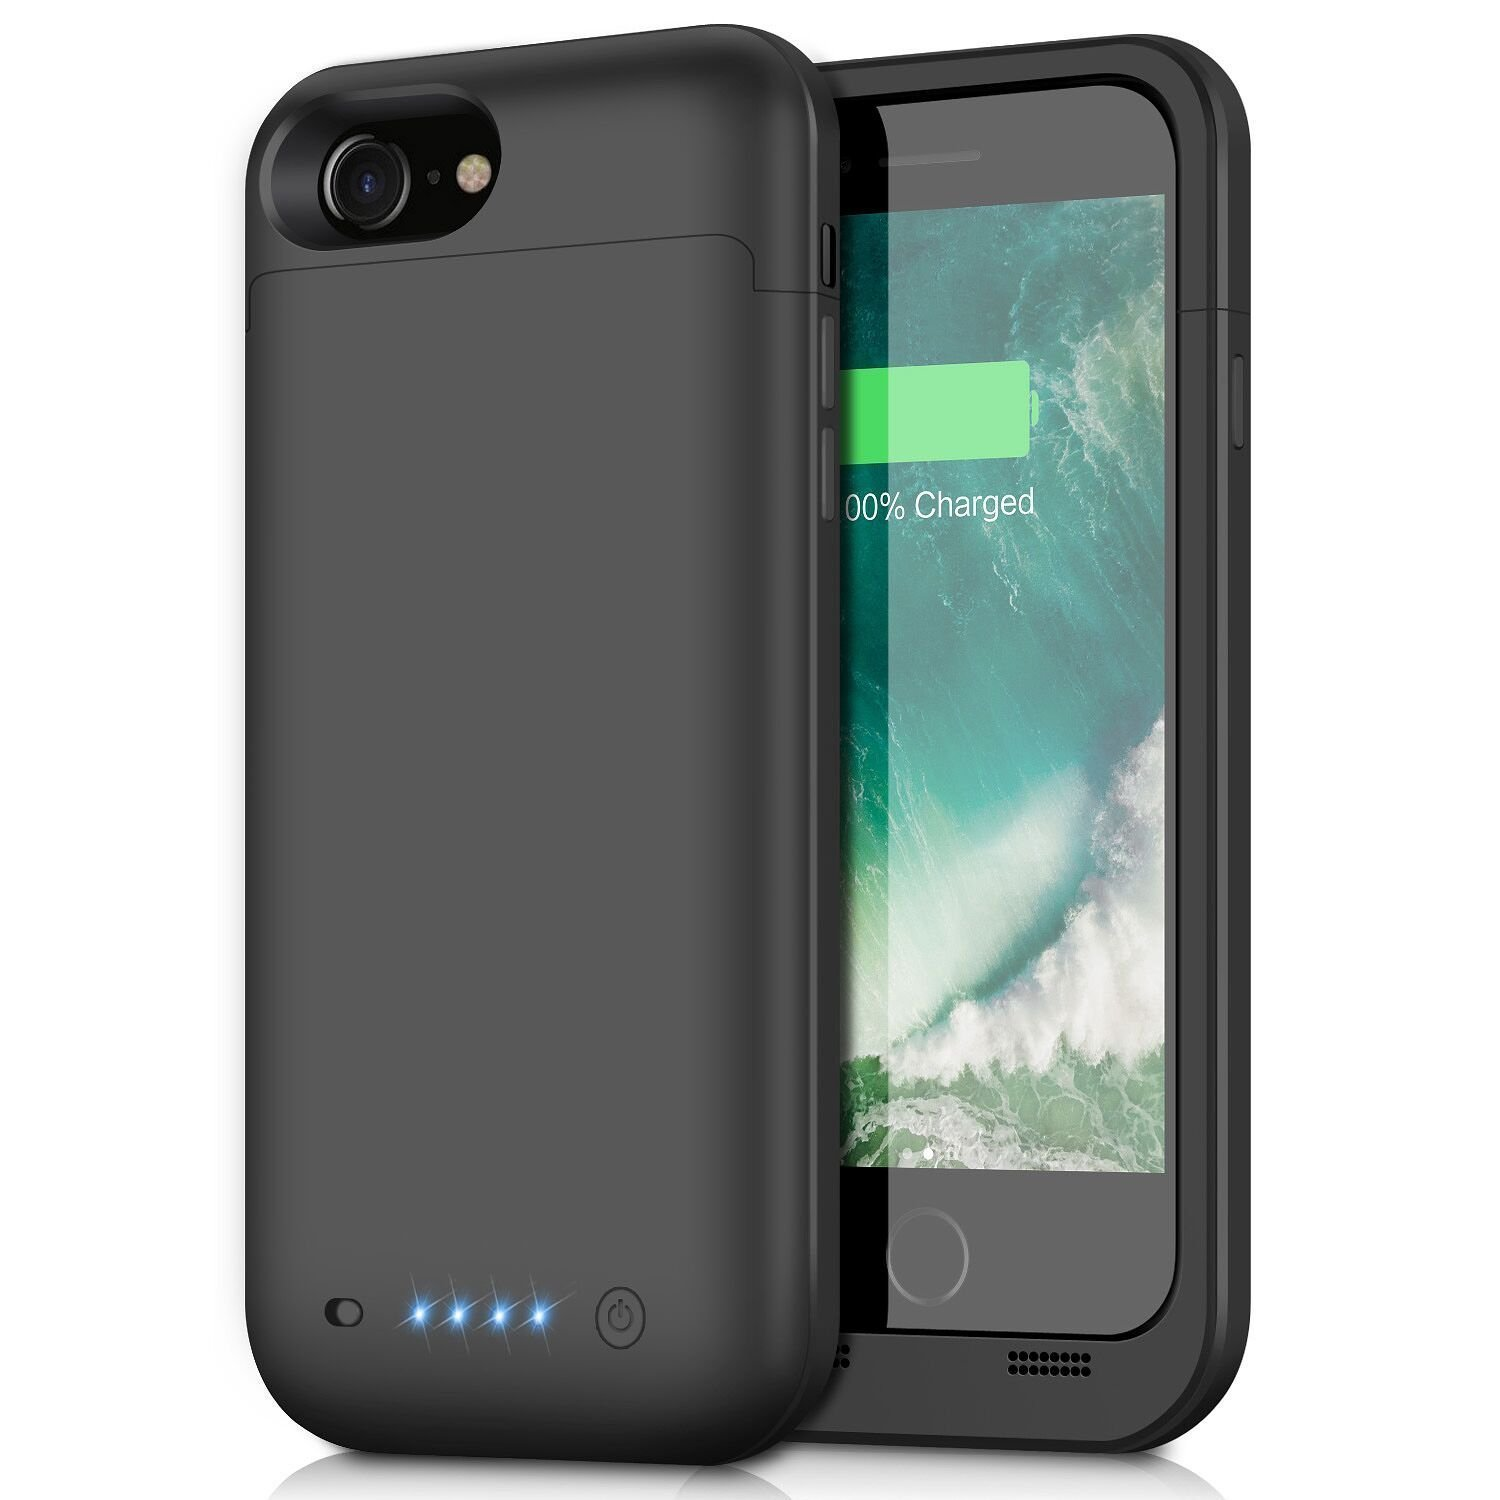 "Funda Bateria iPhone 8/7, 4500mAh Batería Cargador Externa Ultra Recargable Battery Case Portatil Para iPhone 8/7 (4.7"")-Negro"